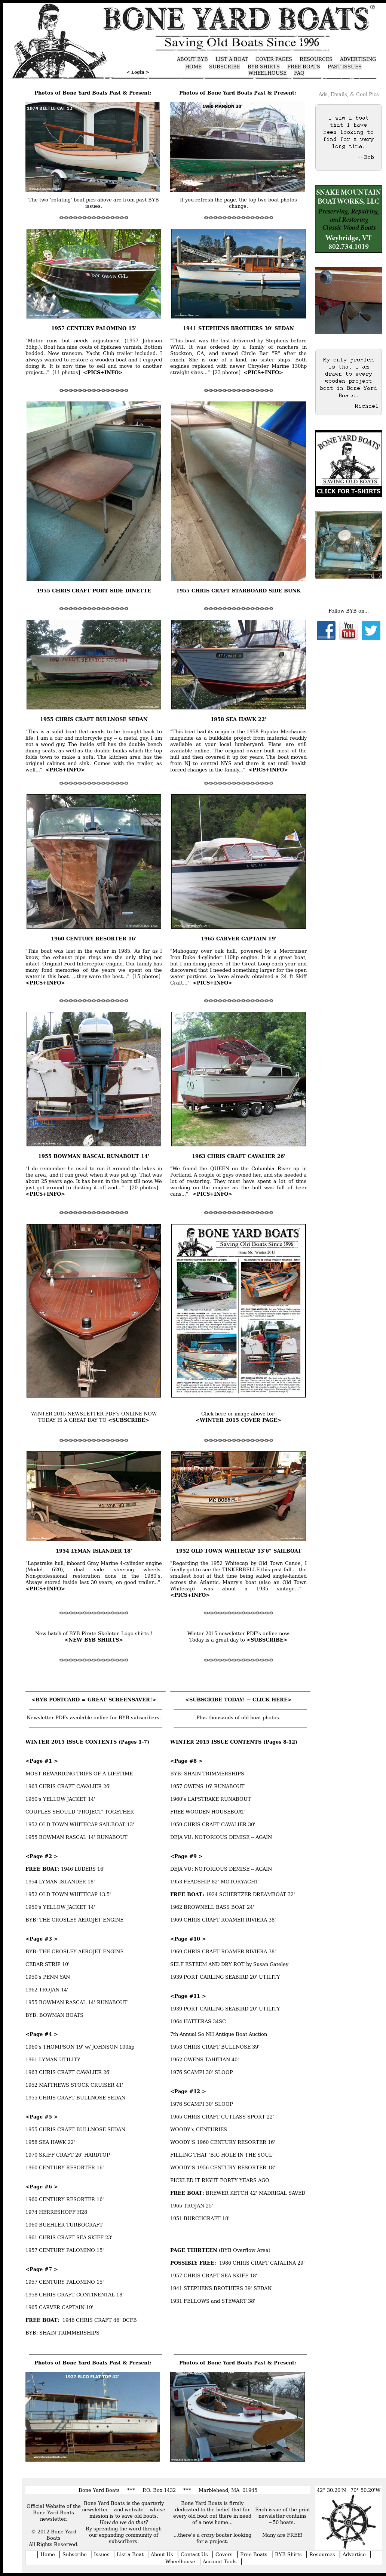 Bone Yard Boats Competitors, Revenue and Employees - Owler Company